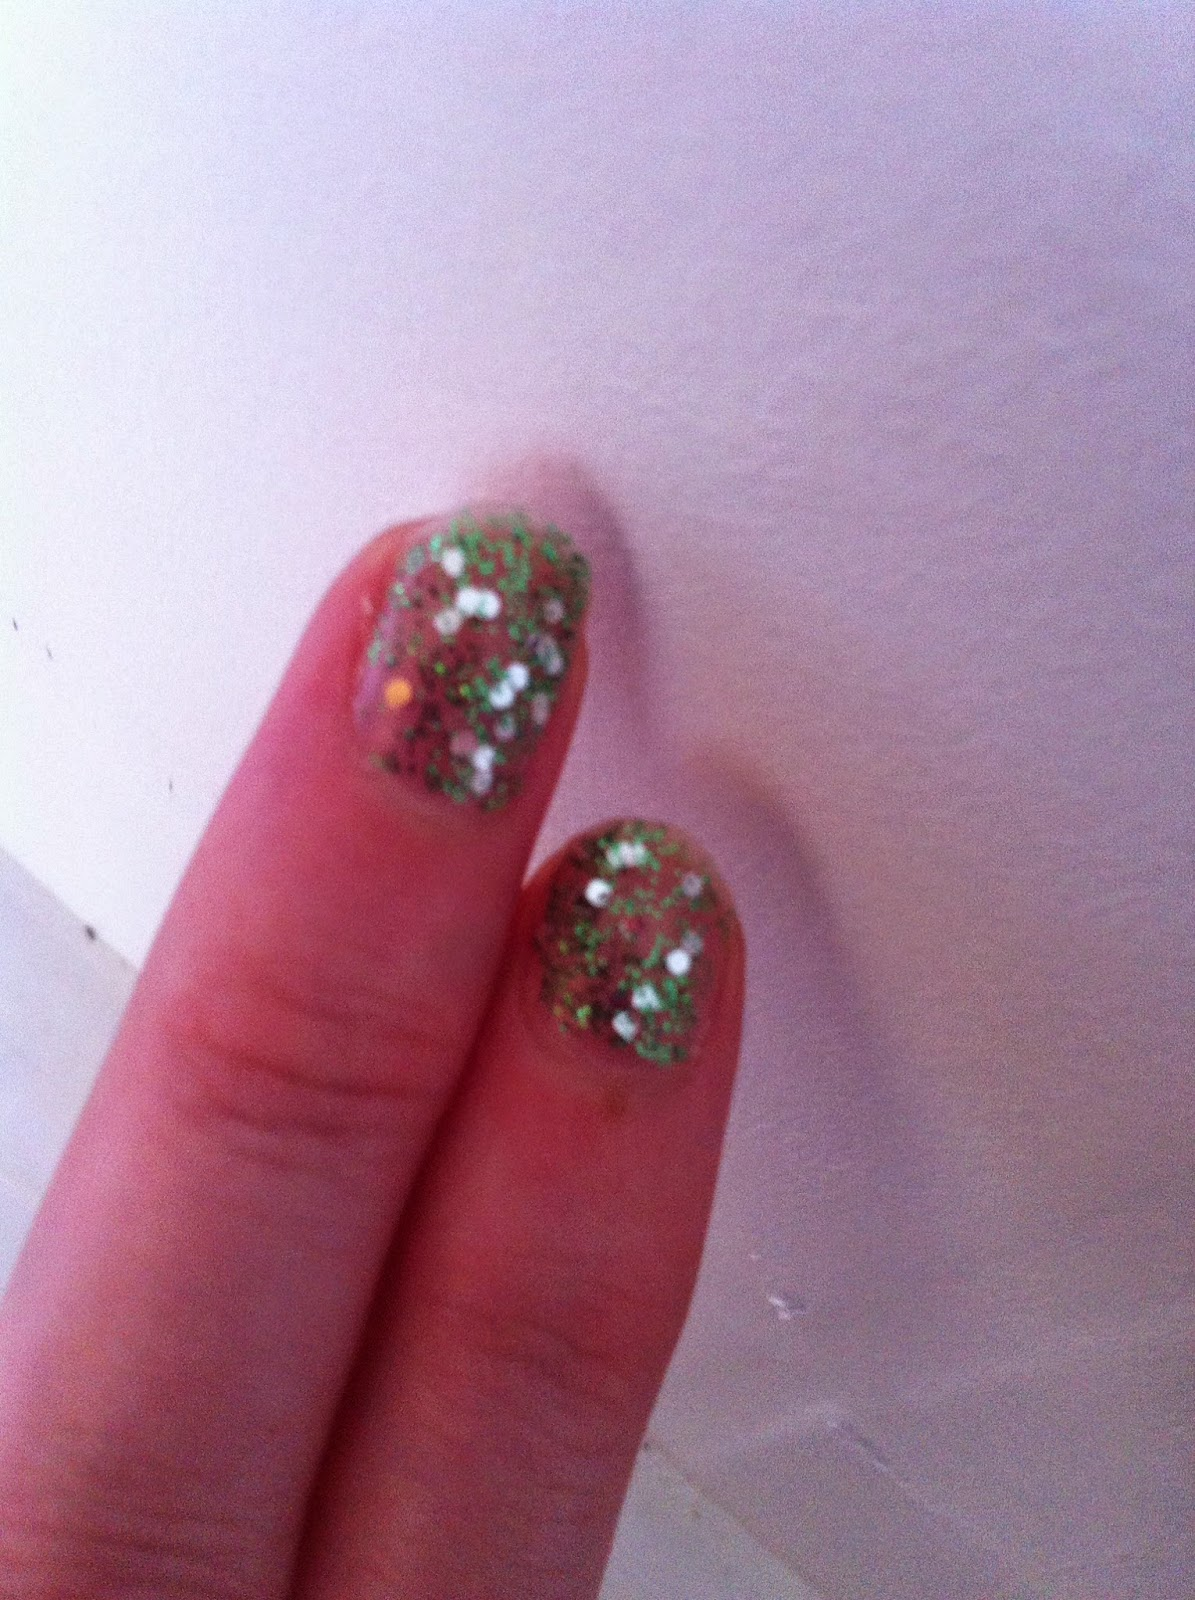 Green and Silver glitter nailpolish O.P.I